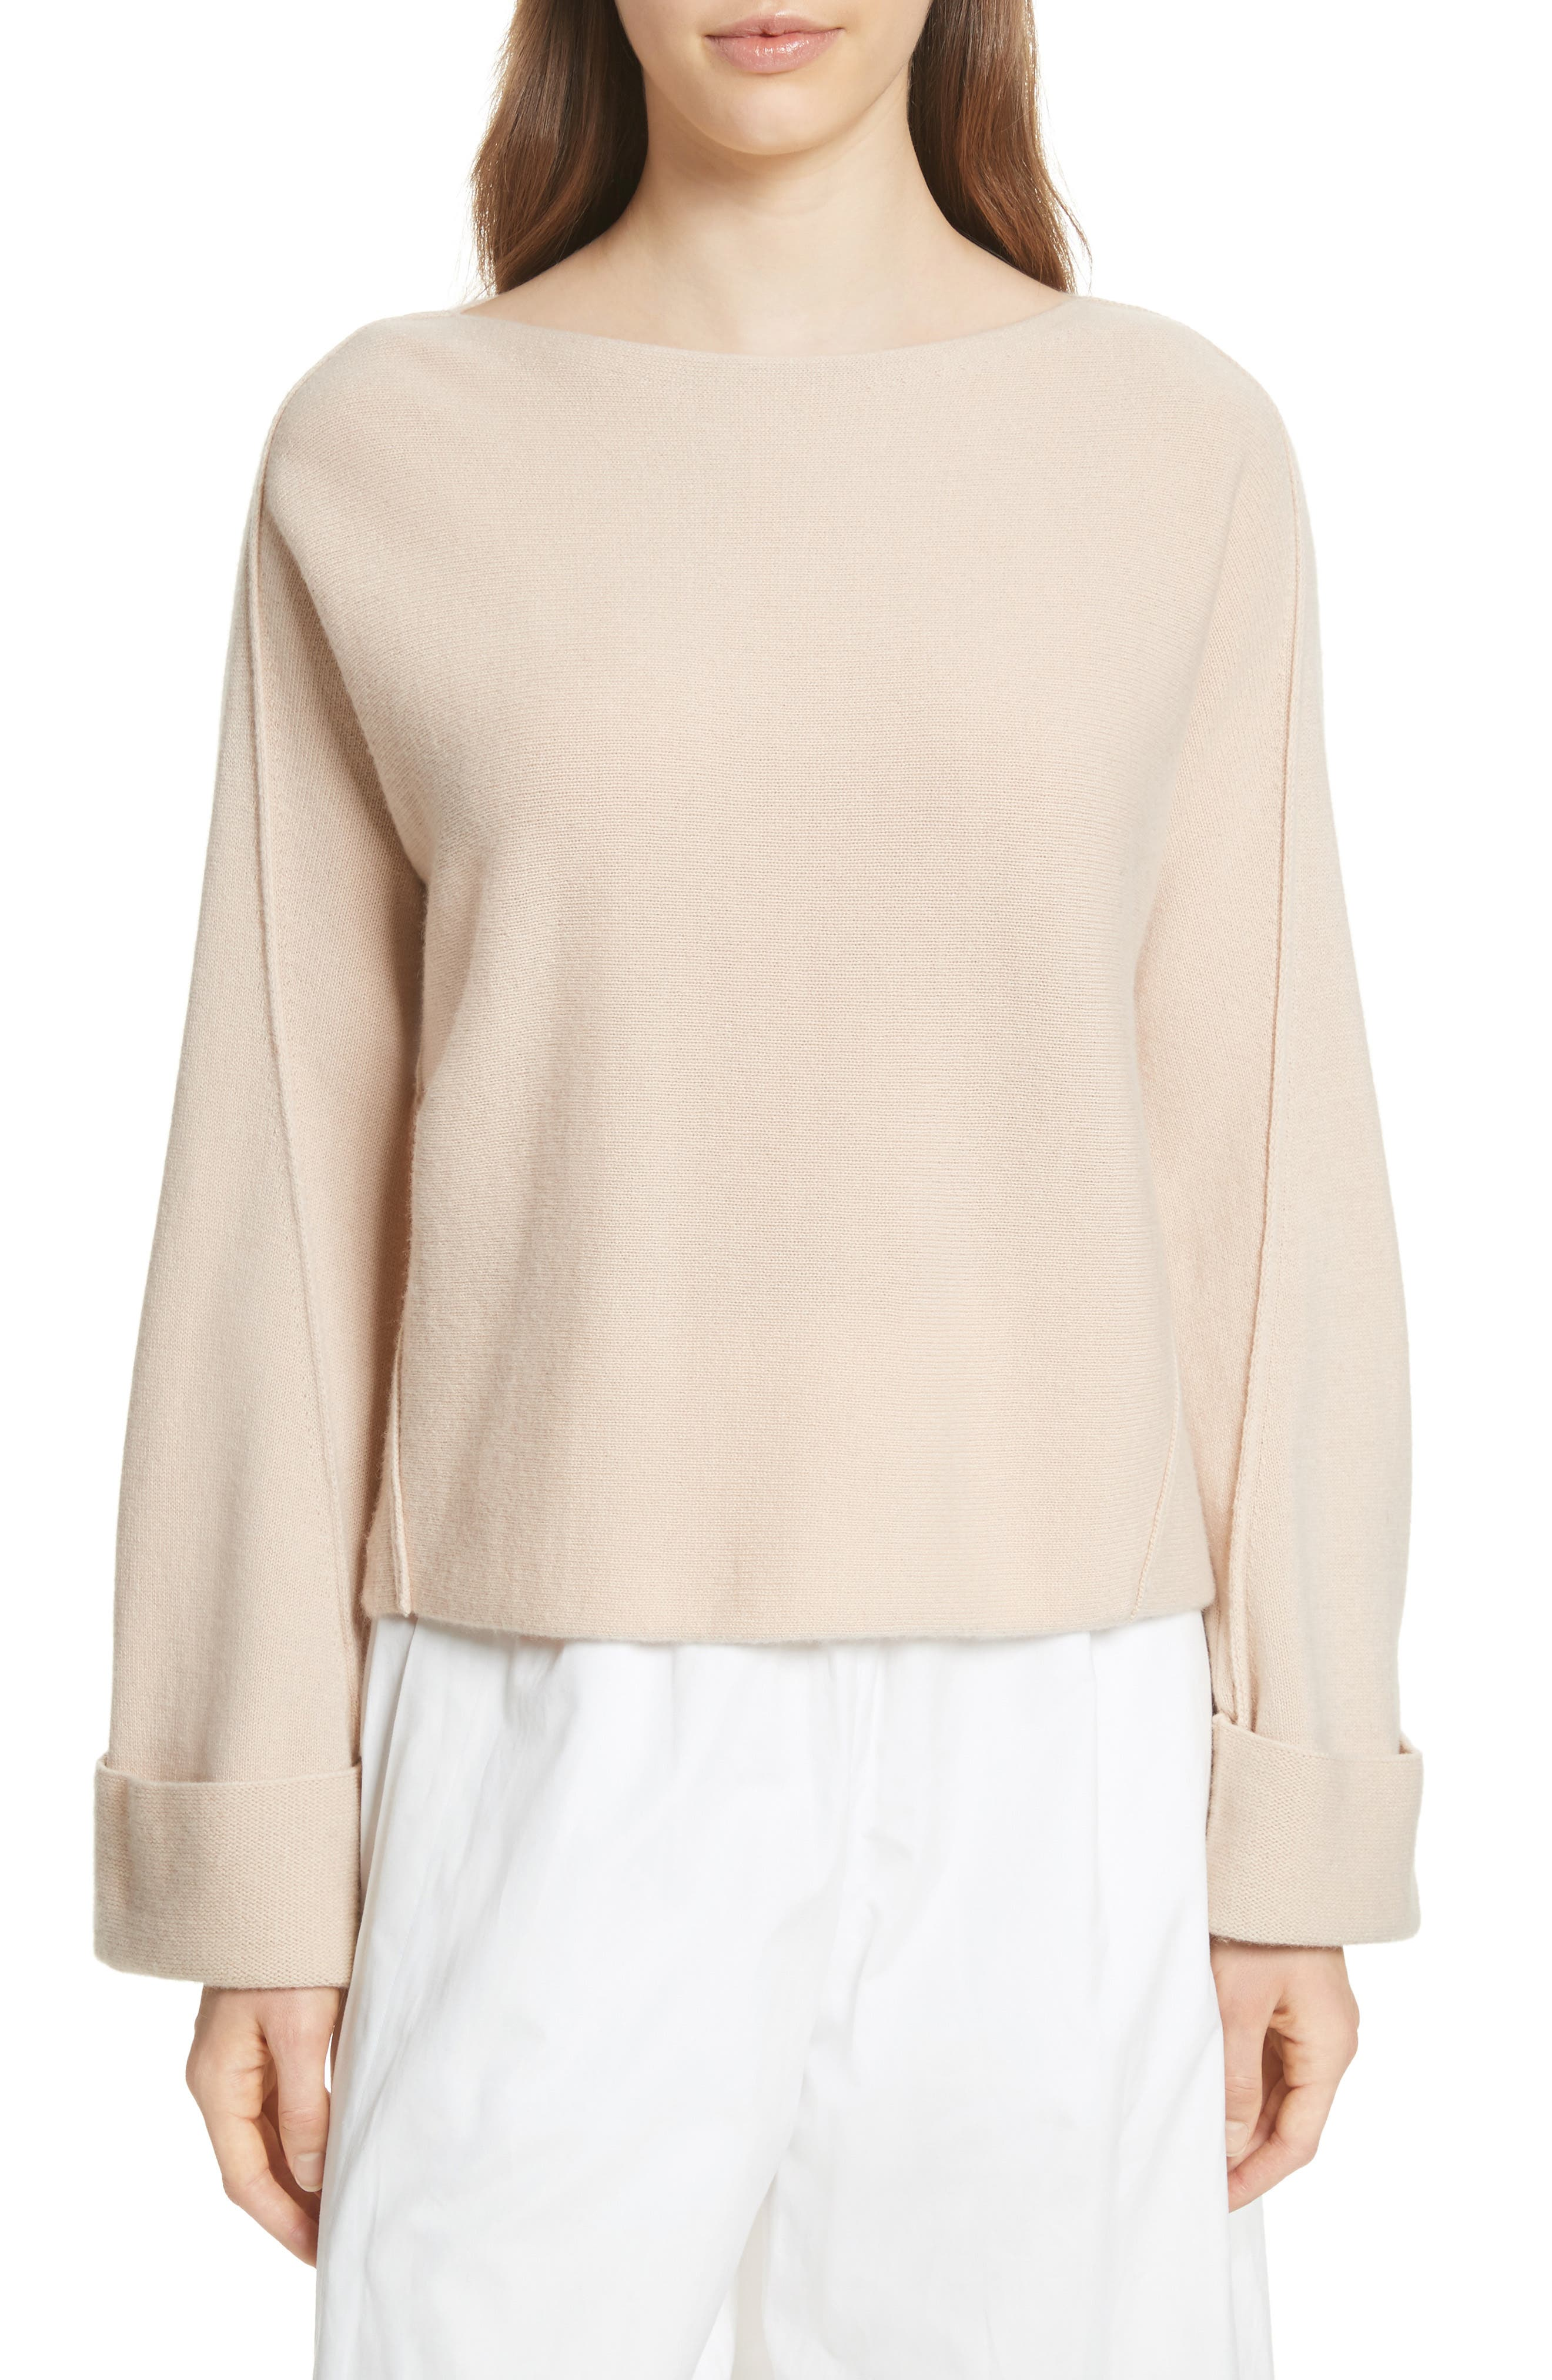 VINCE,                             Cuffed Sleeve Wool & Cashmere Sweater,                             Main thumbnail 1, color,                             298